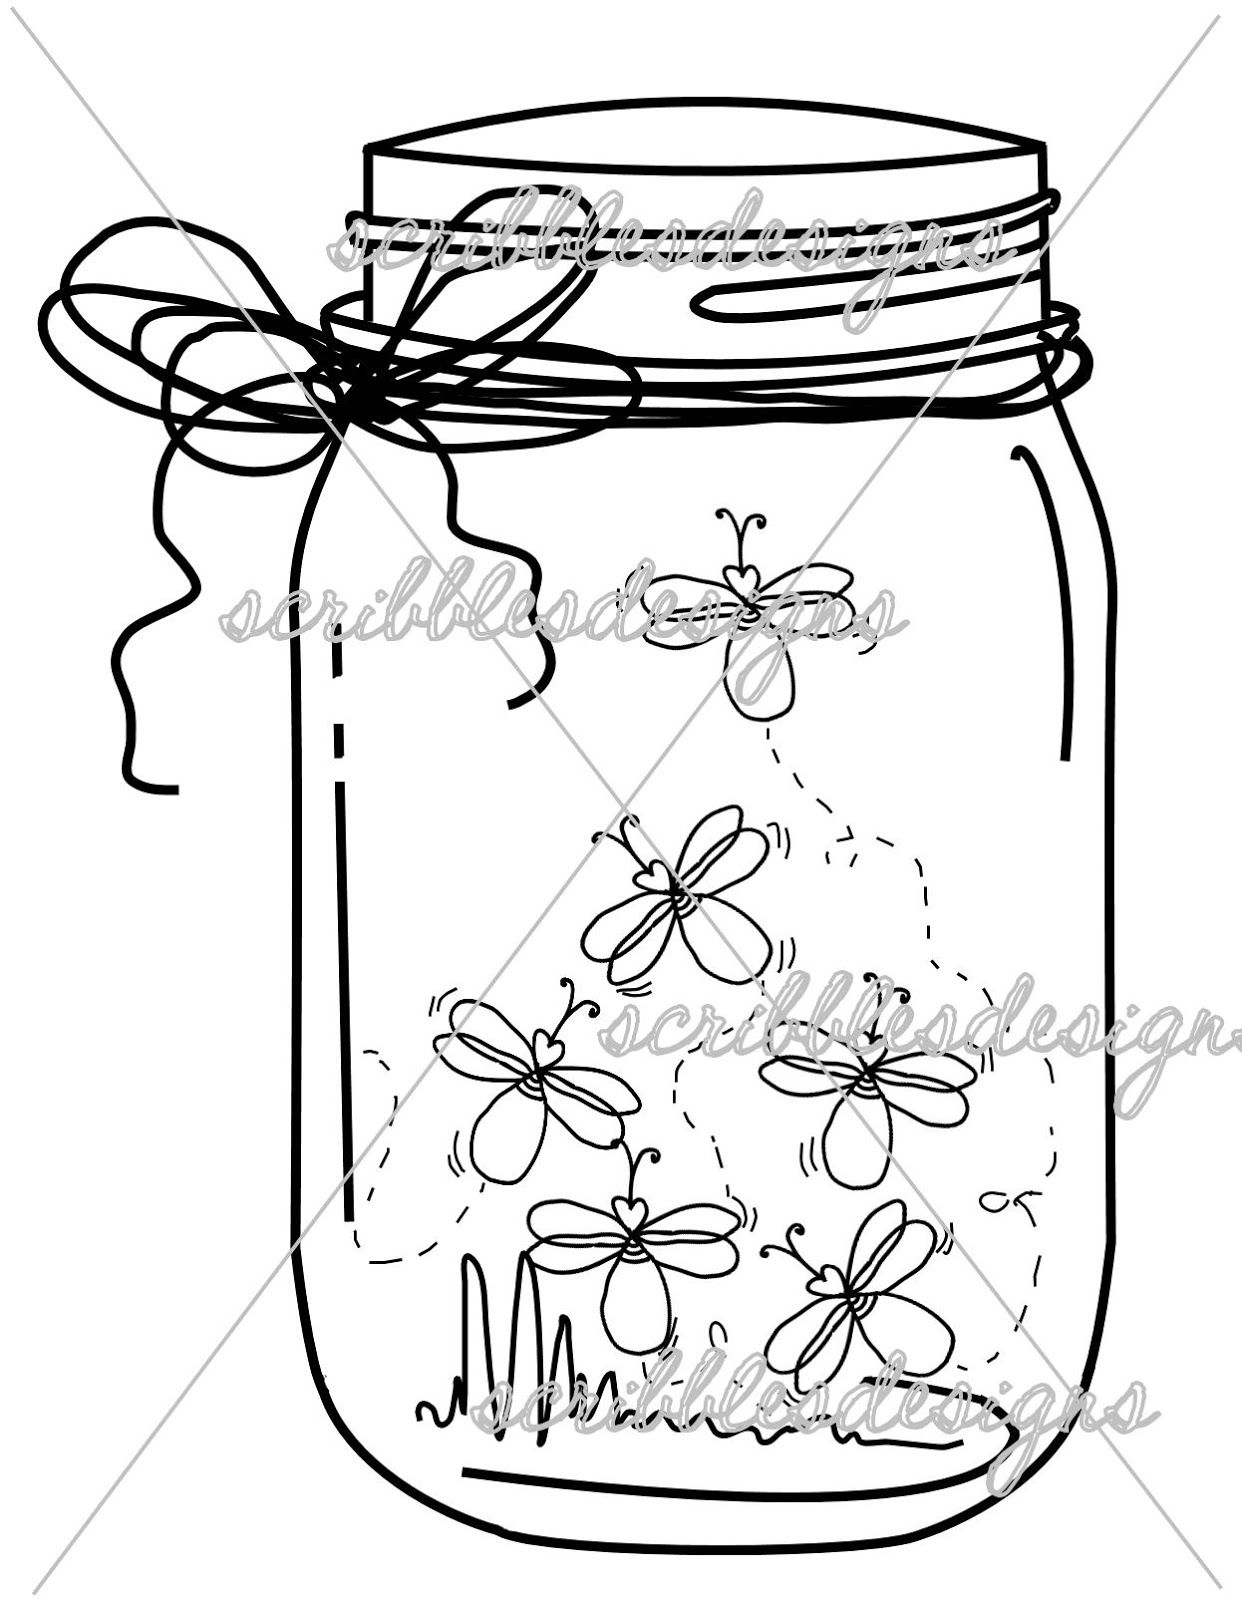 Firefly Jar Art Scribbles Designs 8102 Firefly Mason Jar 3 00 Prim Ideas